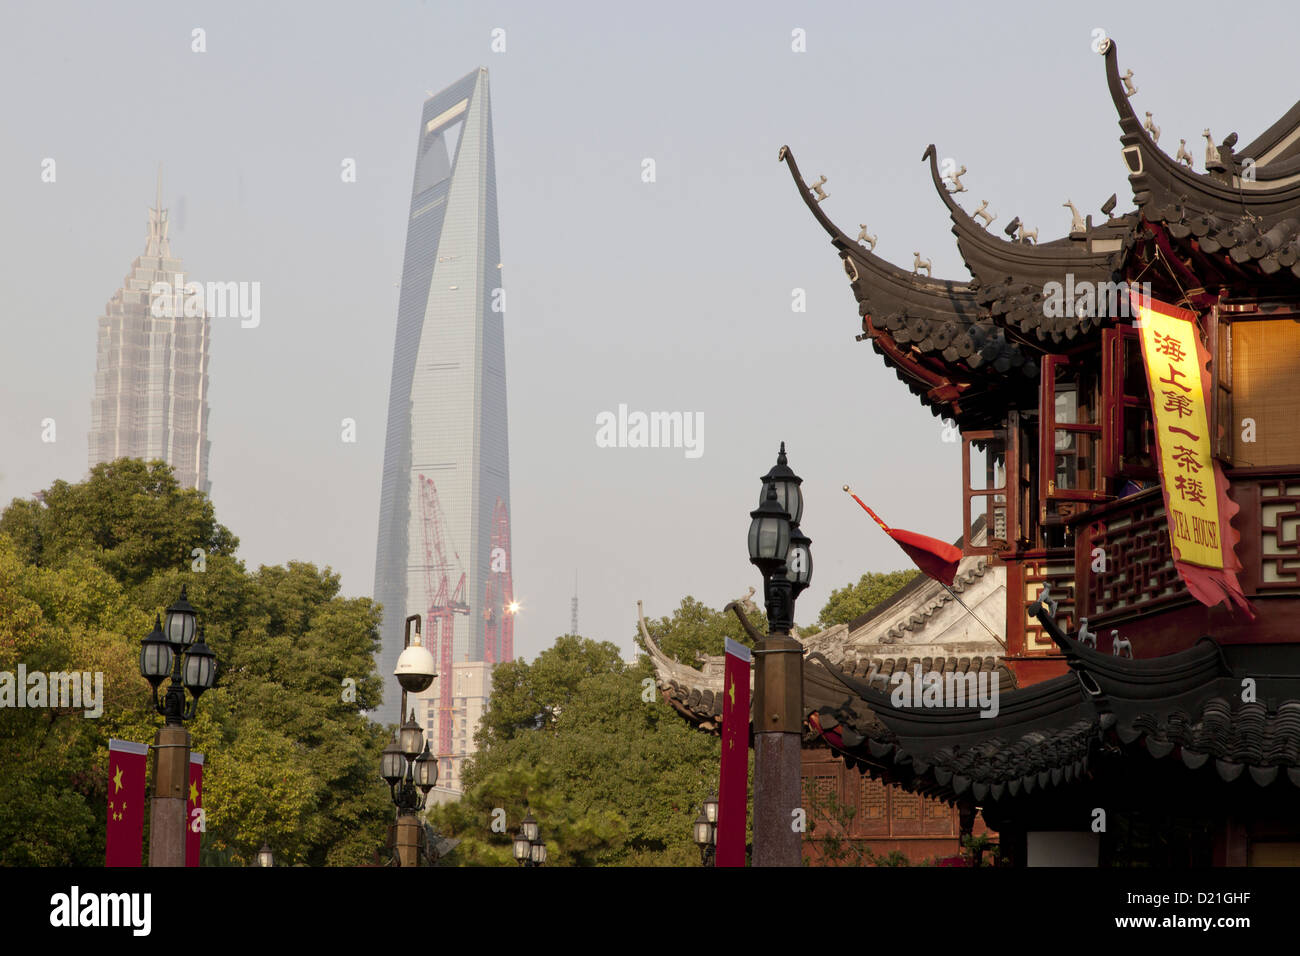 View of Huxinting Teahouse at Yu Yuan Garden and World Financial Center, Shanghai, China, Asia - Stock Image